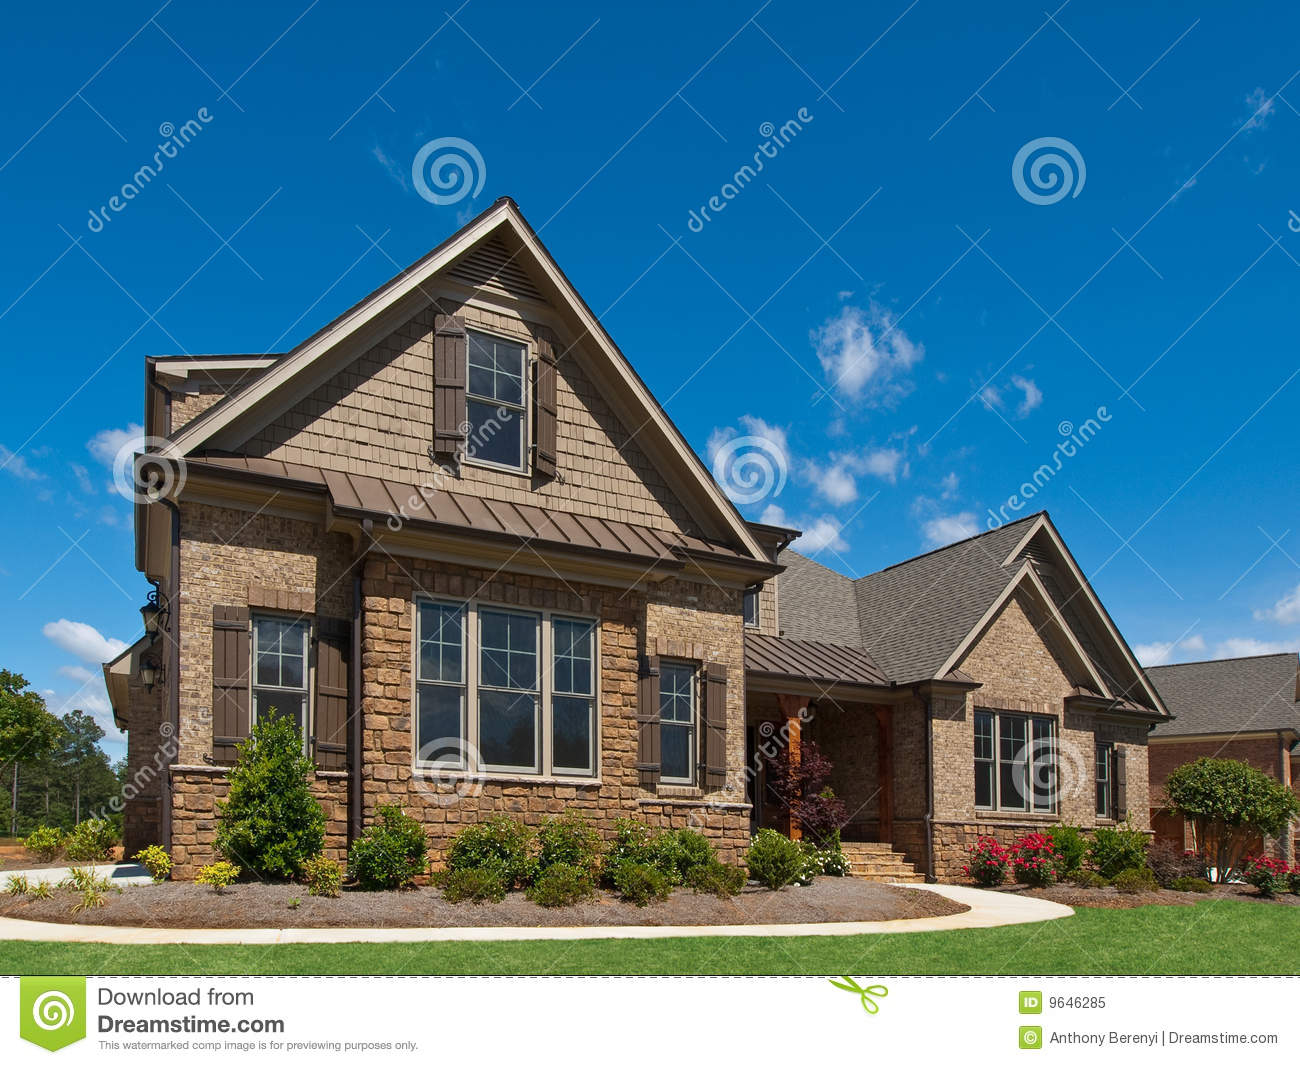 Model Luxury Home Exterior Angle View Sidewalk Royalty